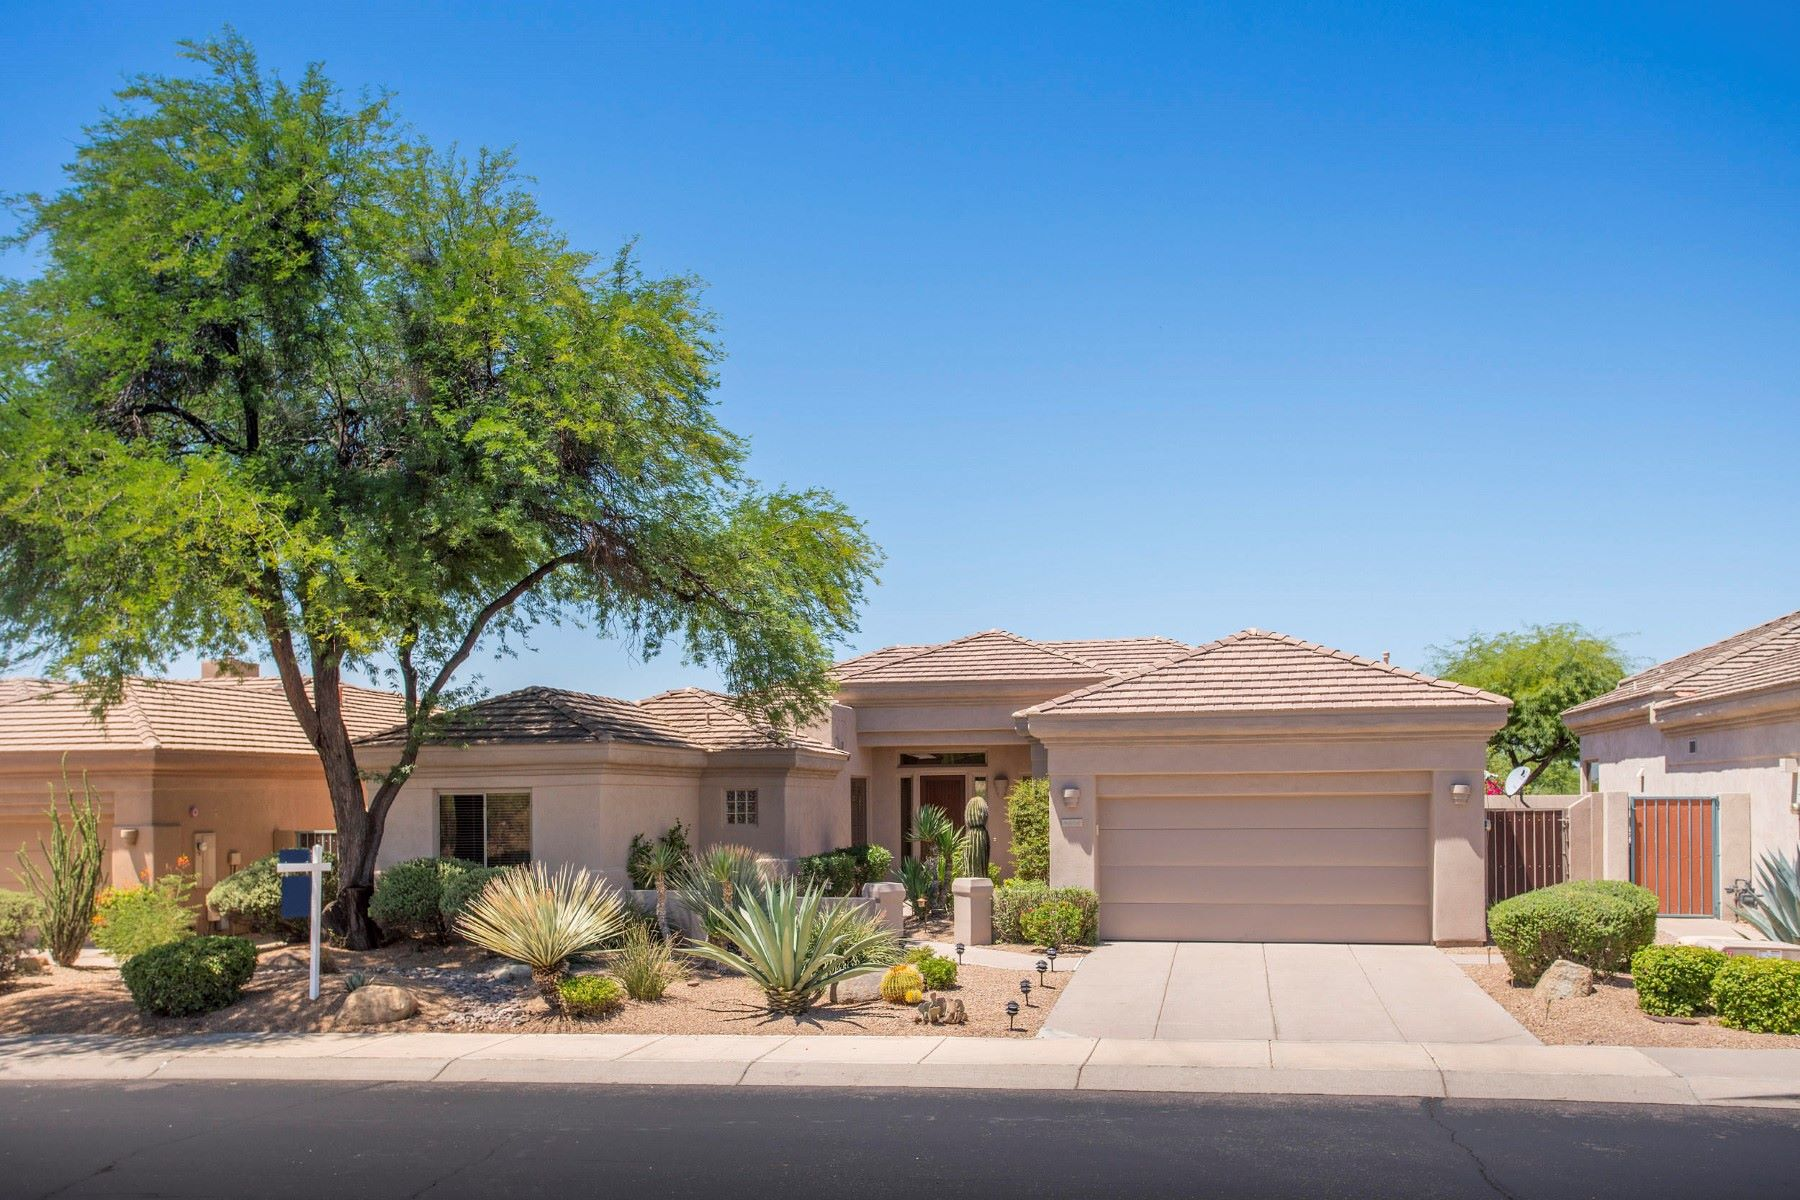 Casa Unifamiliar por un Venta en Gorgeous single story Scottsdale home 34016 N 60th Pl Scottsdale, Arizona, 85266 Estados Unidos